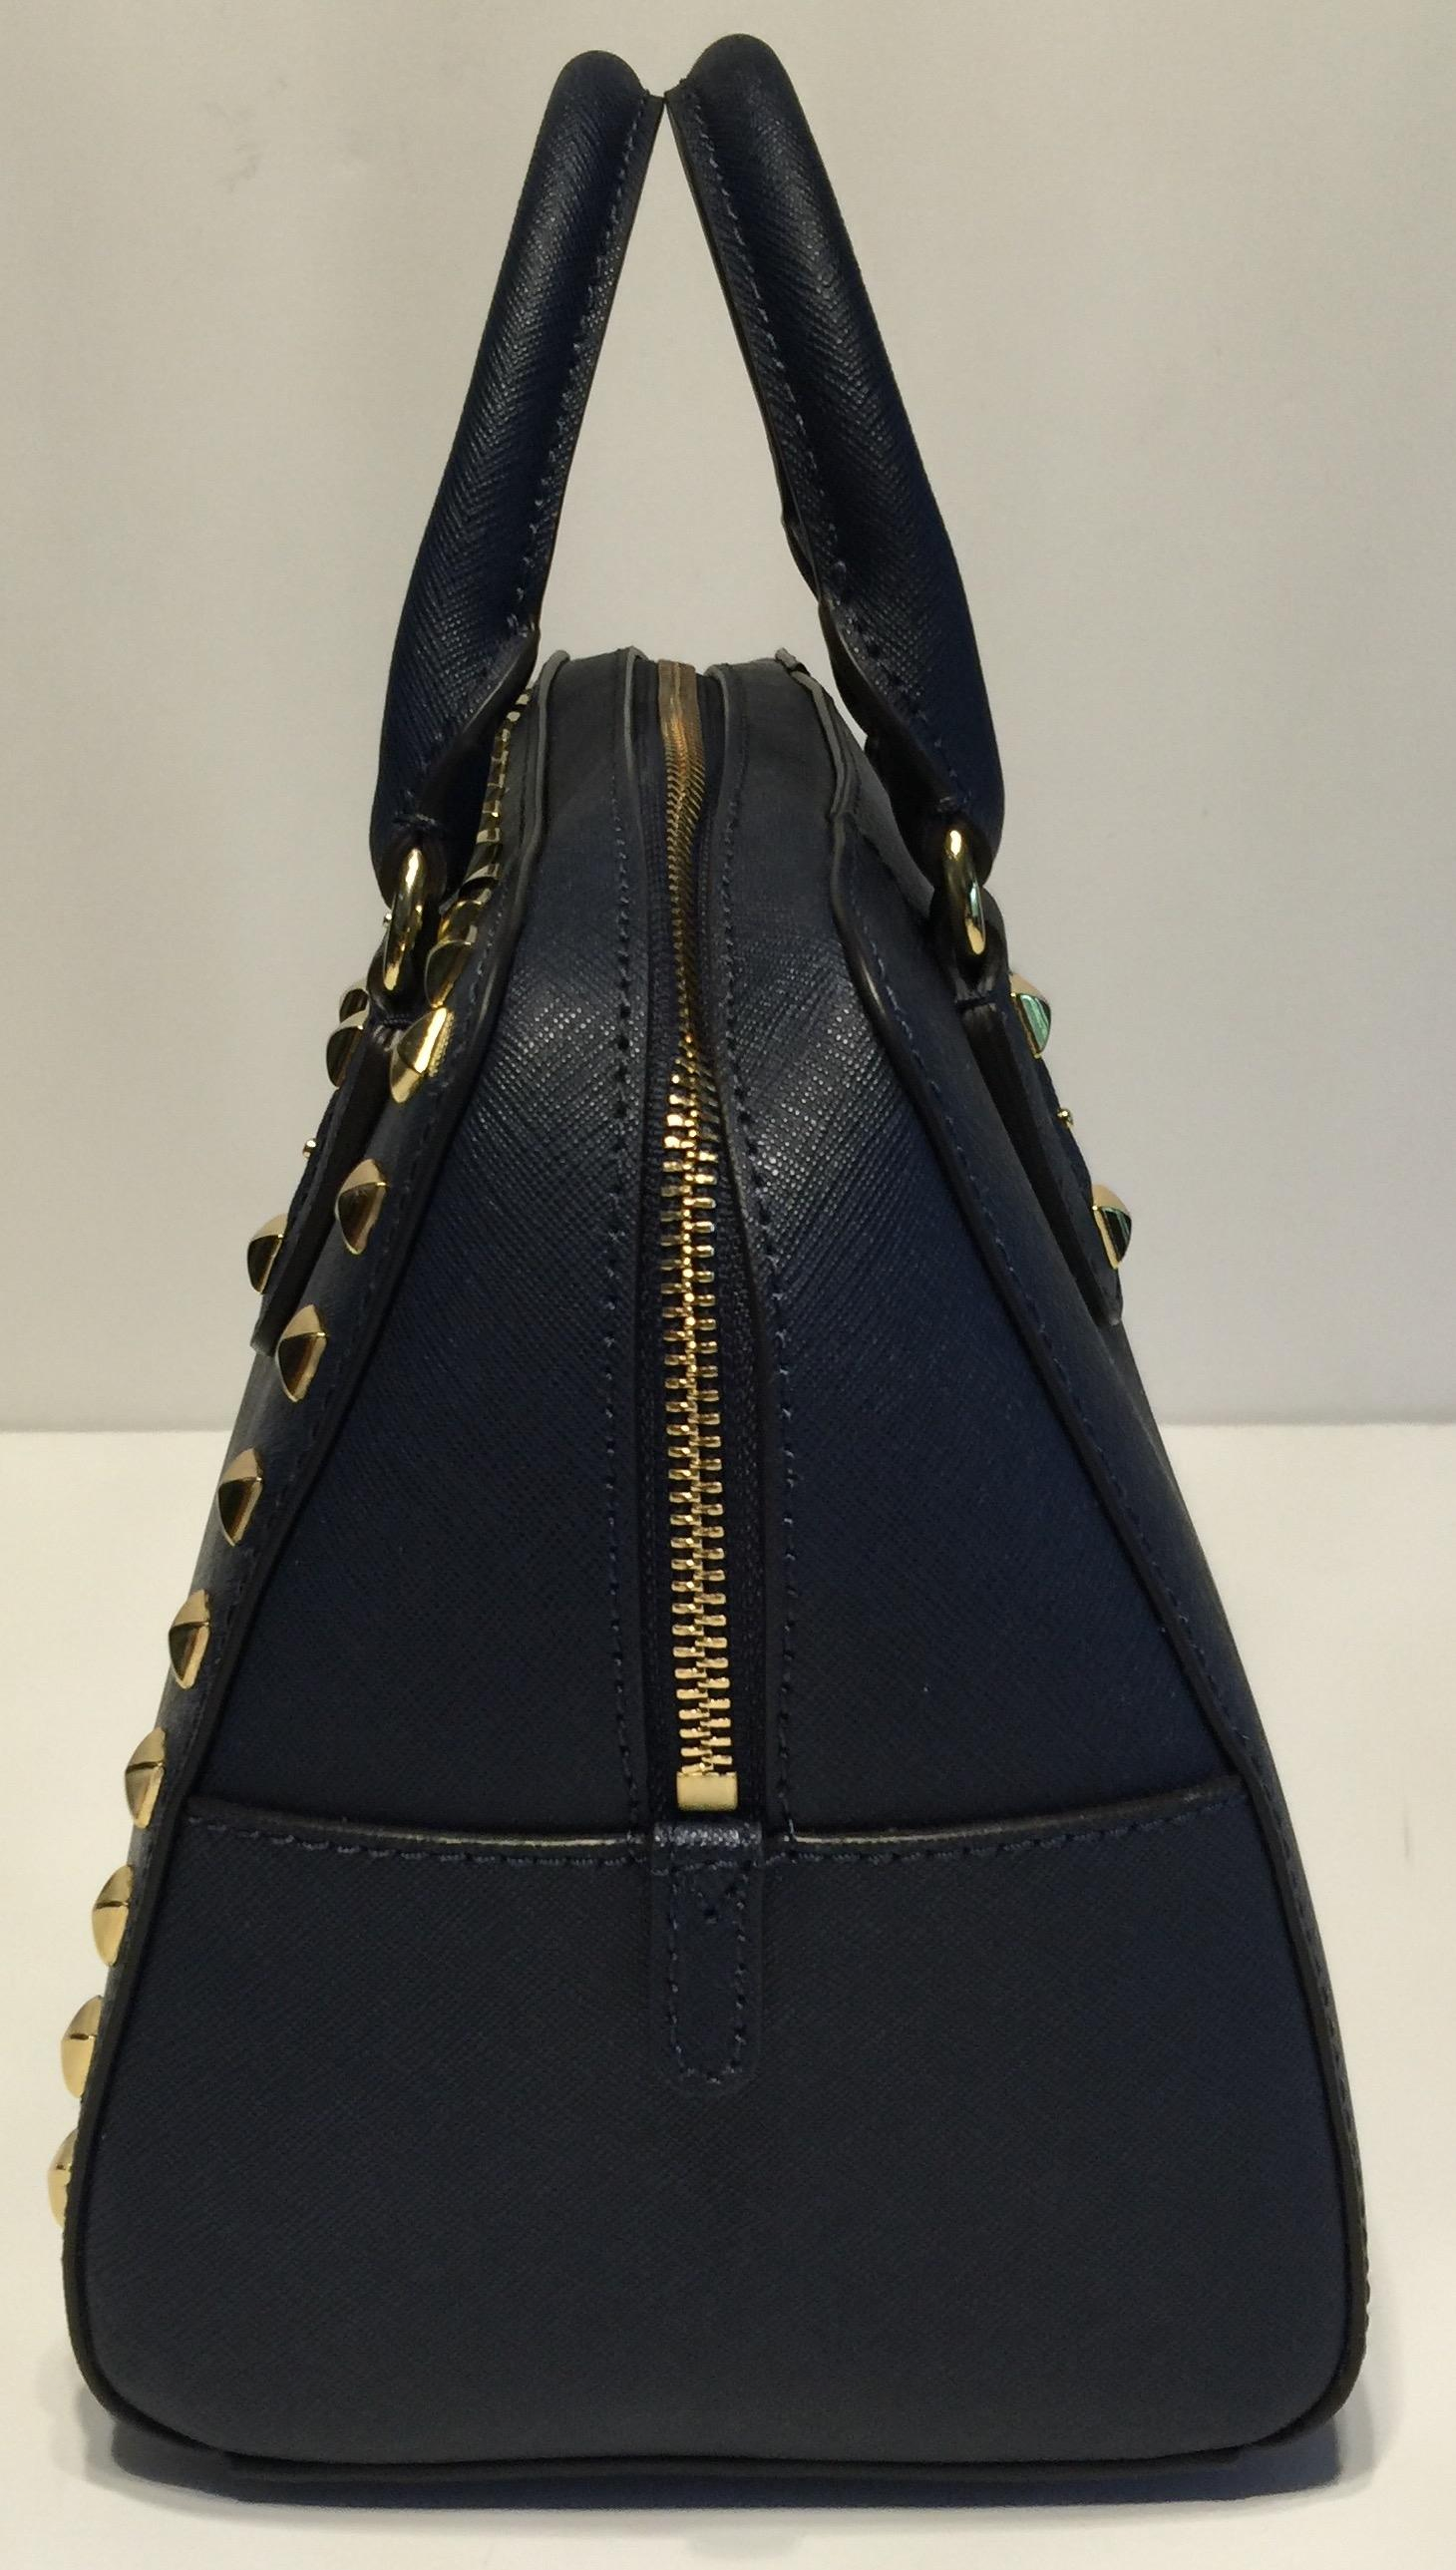 5ab86bb58b9e italy michael kors black medium grayson bag 31813 18815  canada michael kors  stud small handbag navy blue saffiano leather satchel tradesy 9b015 6e517